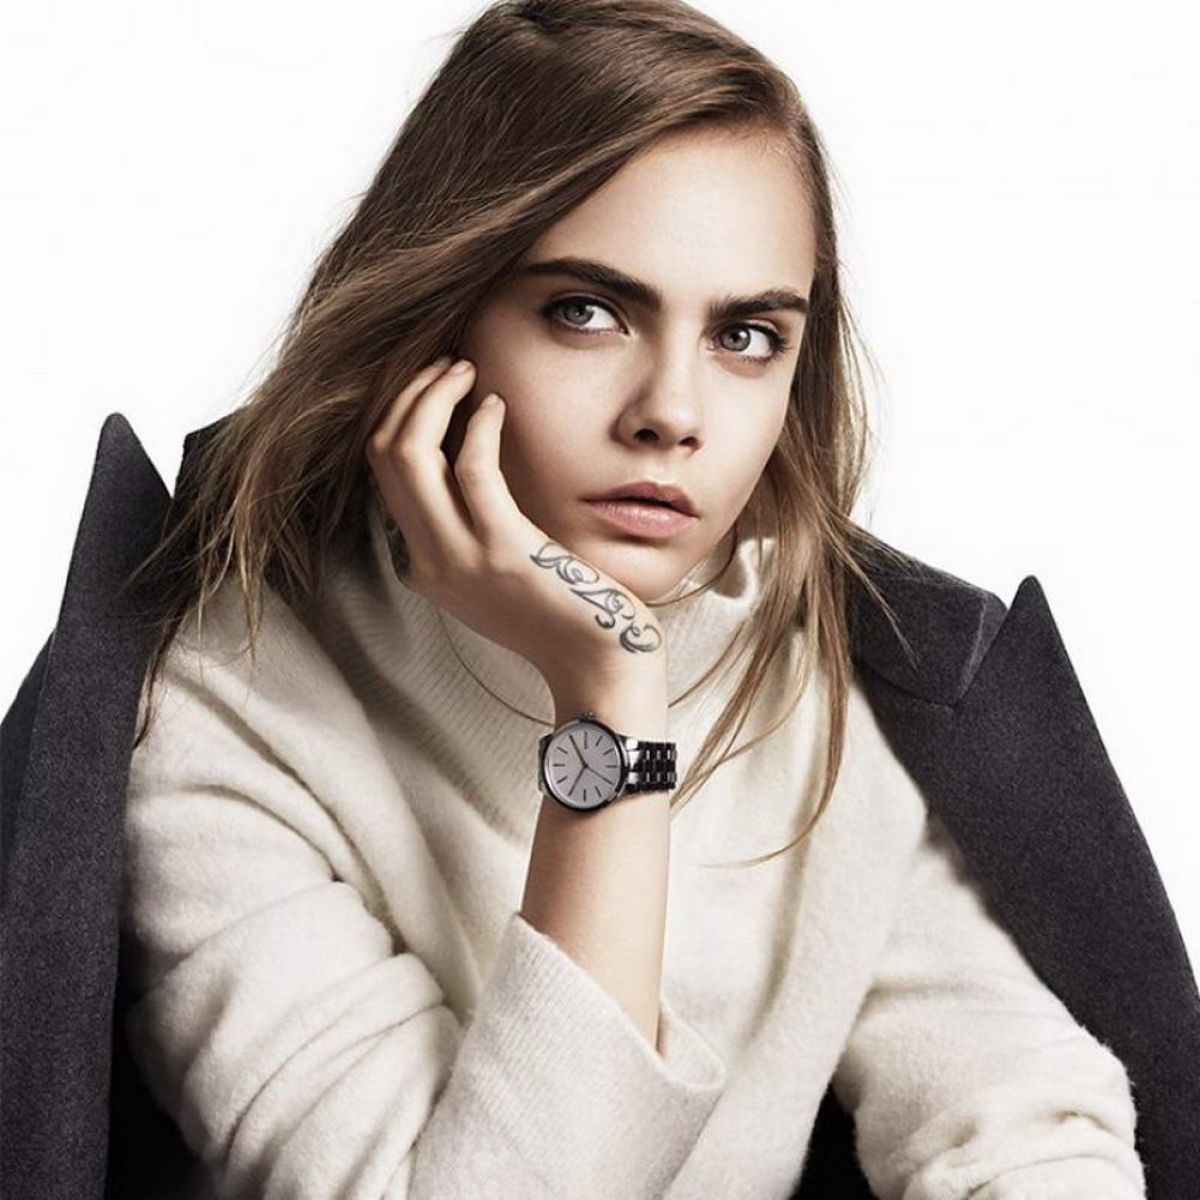 Cara Delevingne Archives - Page 7 of 37 - HawtCelebs ...